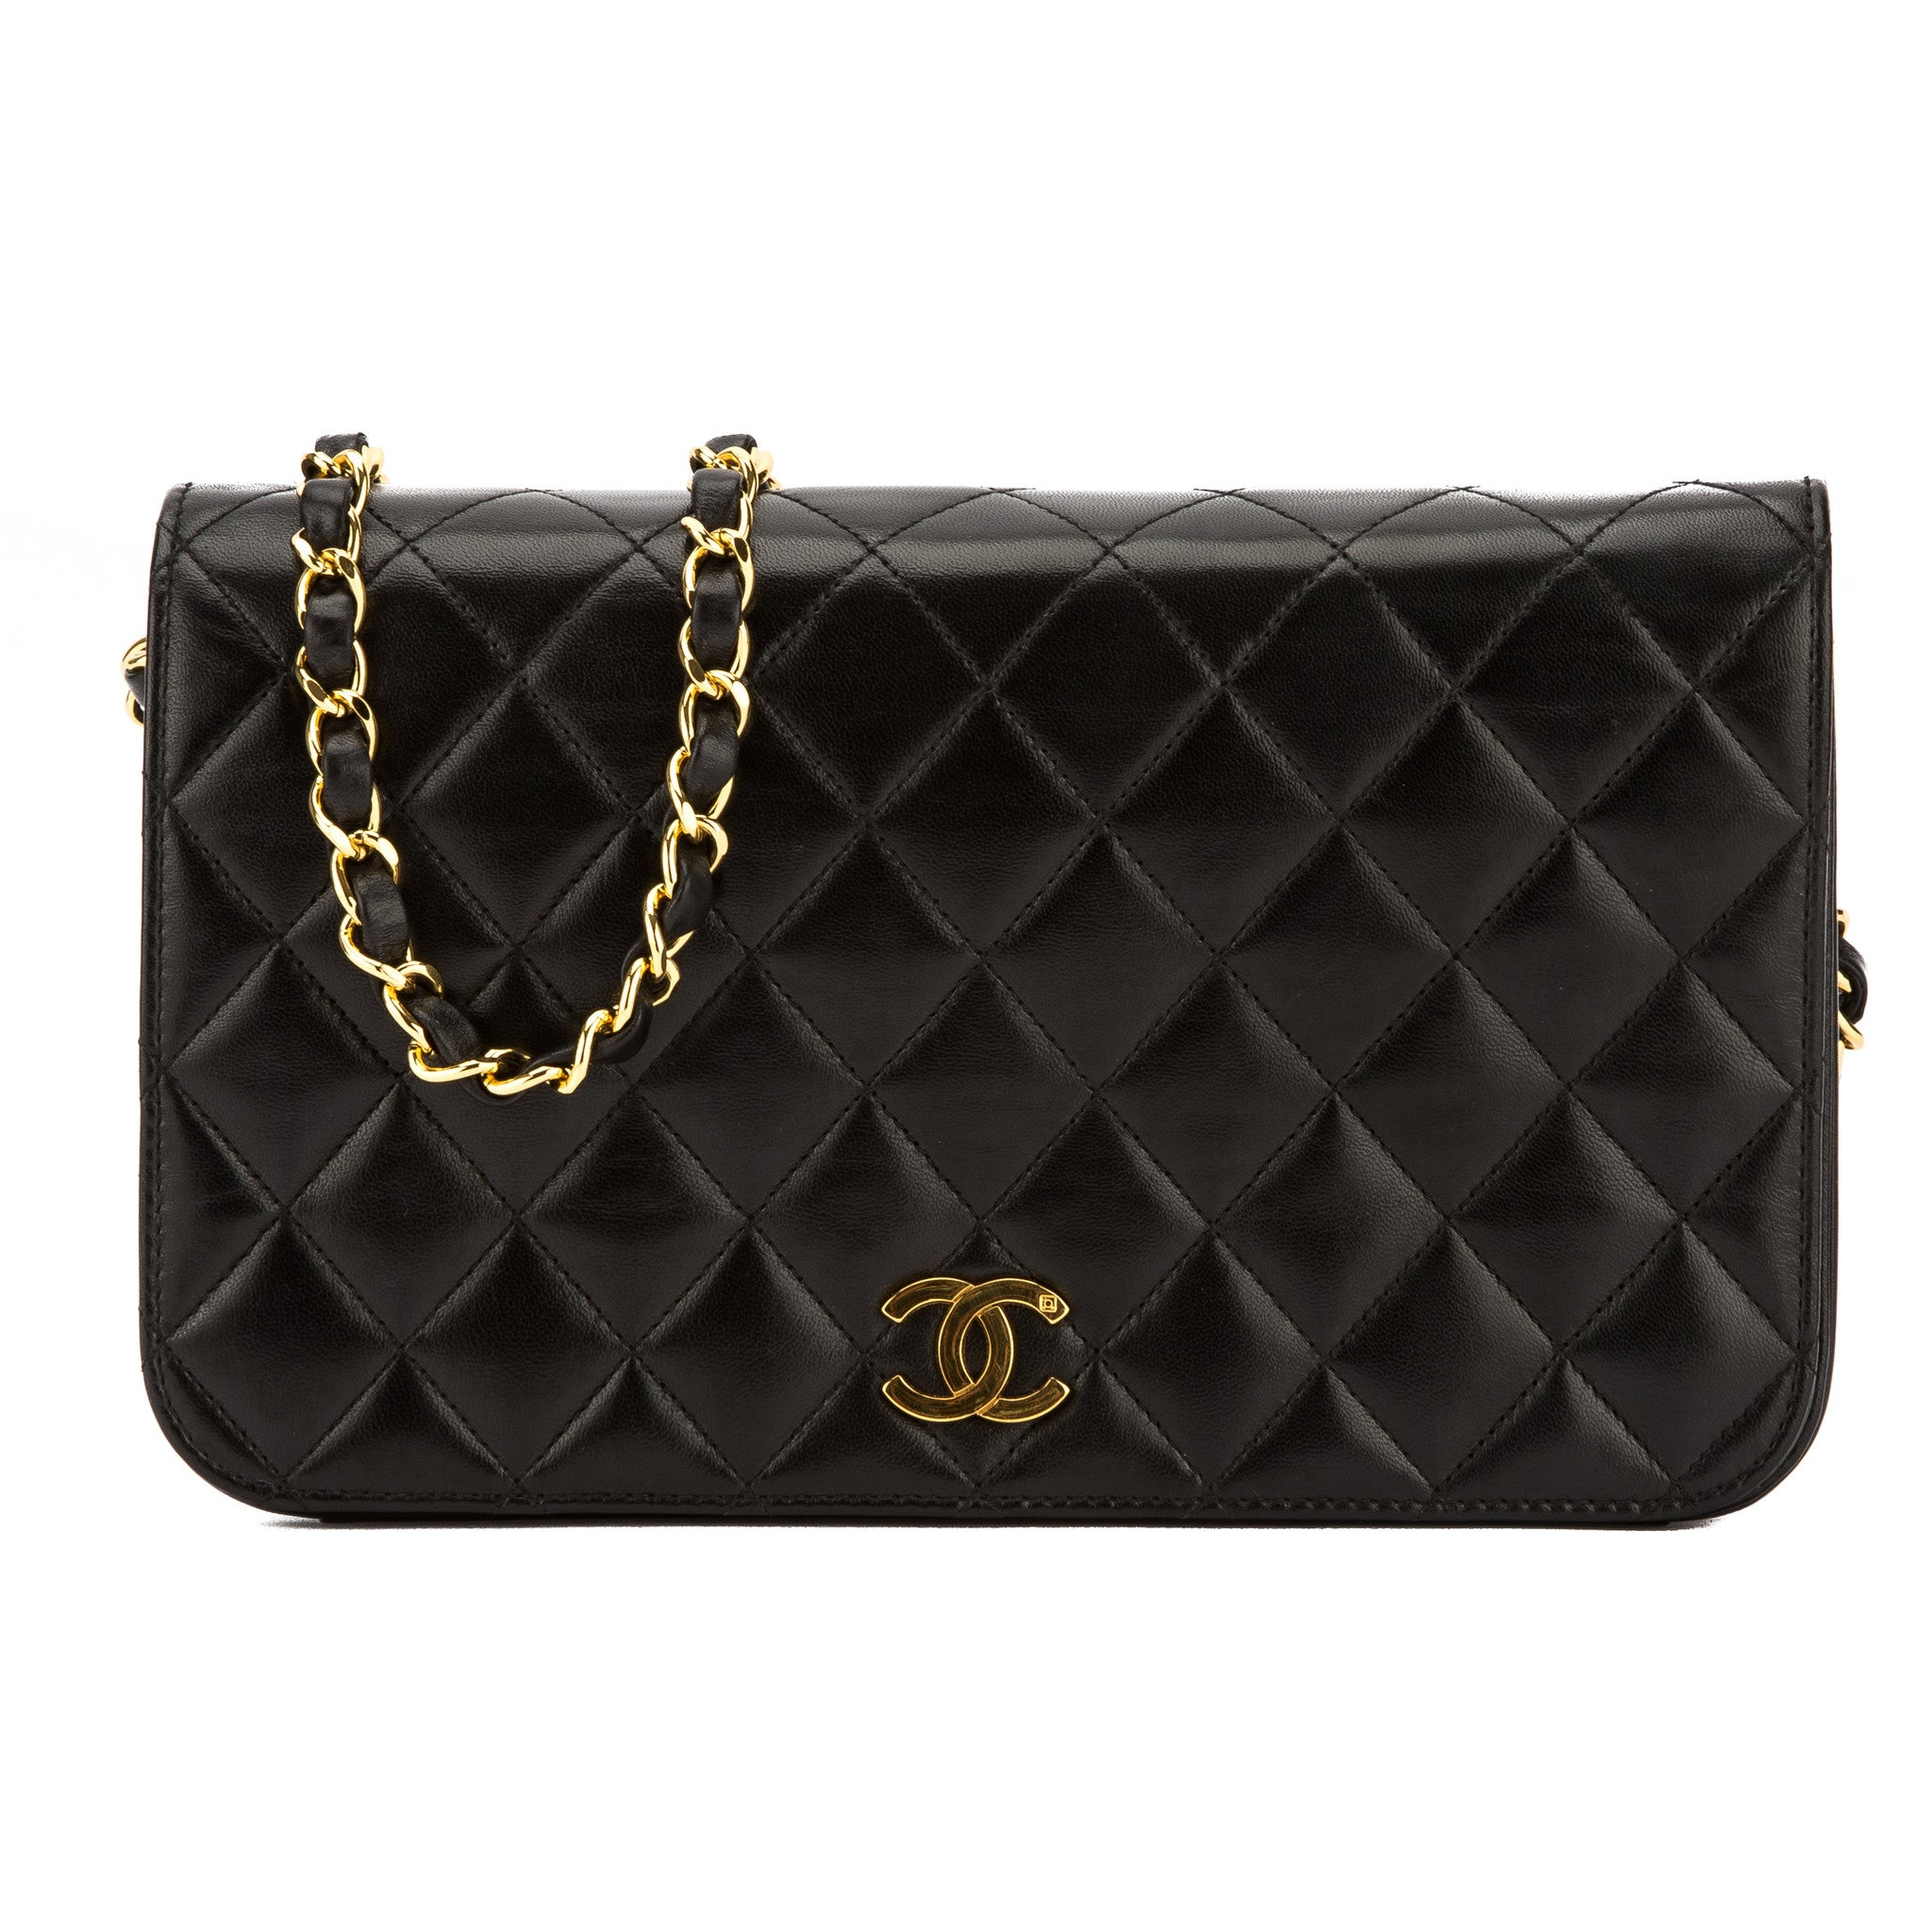 bbd54554703a Chanel Black Quilted Lambskin Leather Small Single Flap Bag Pre Owned